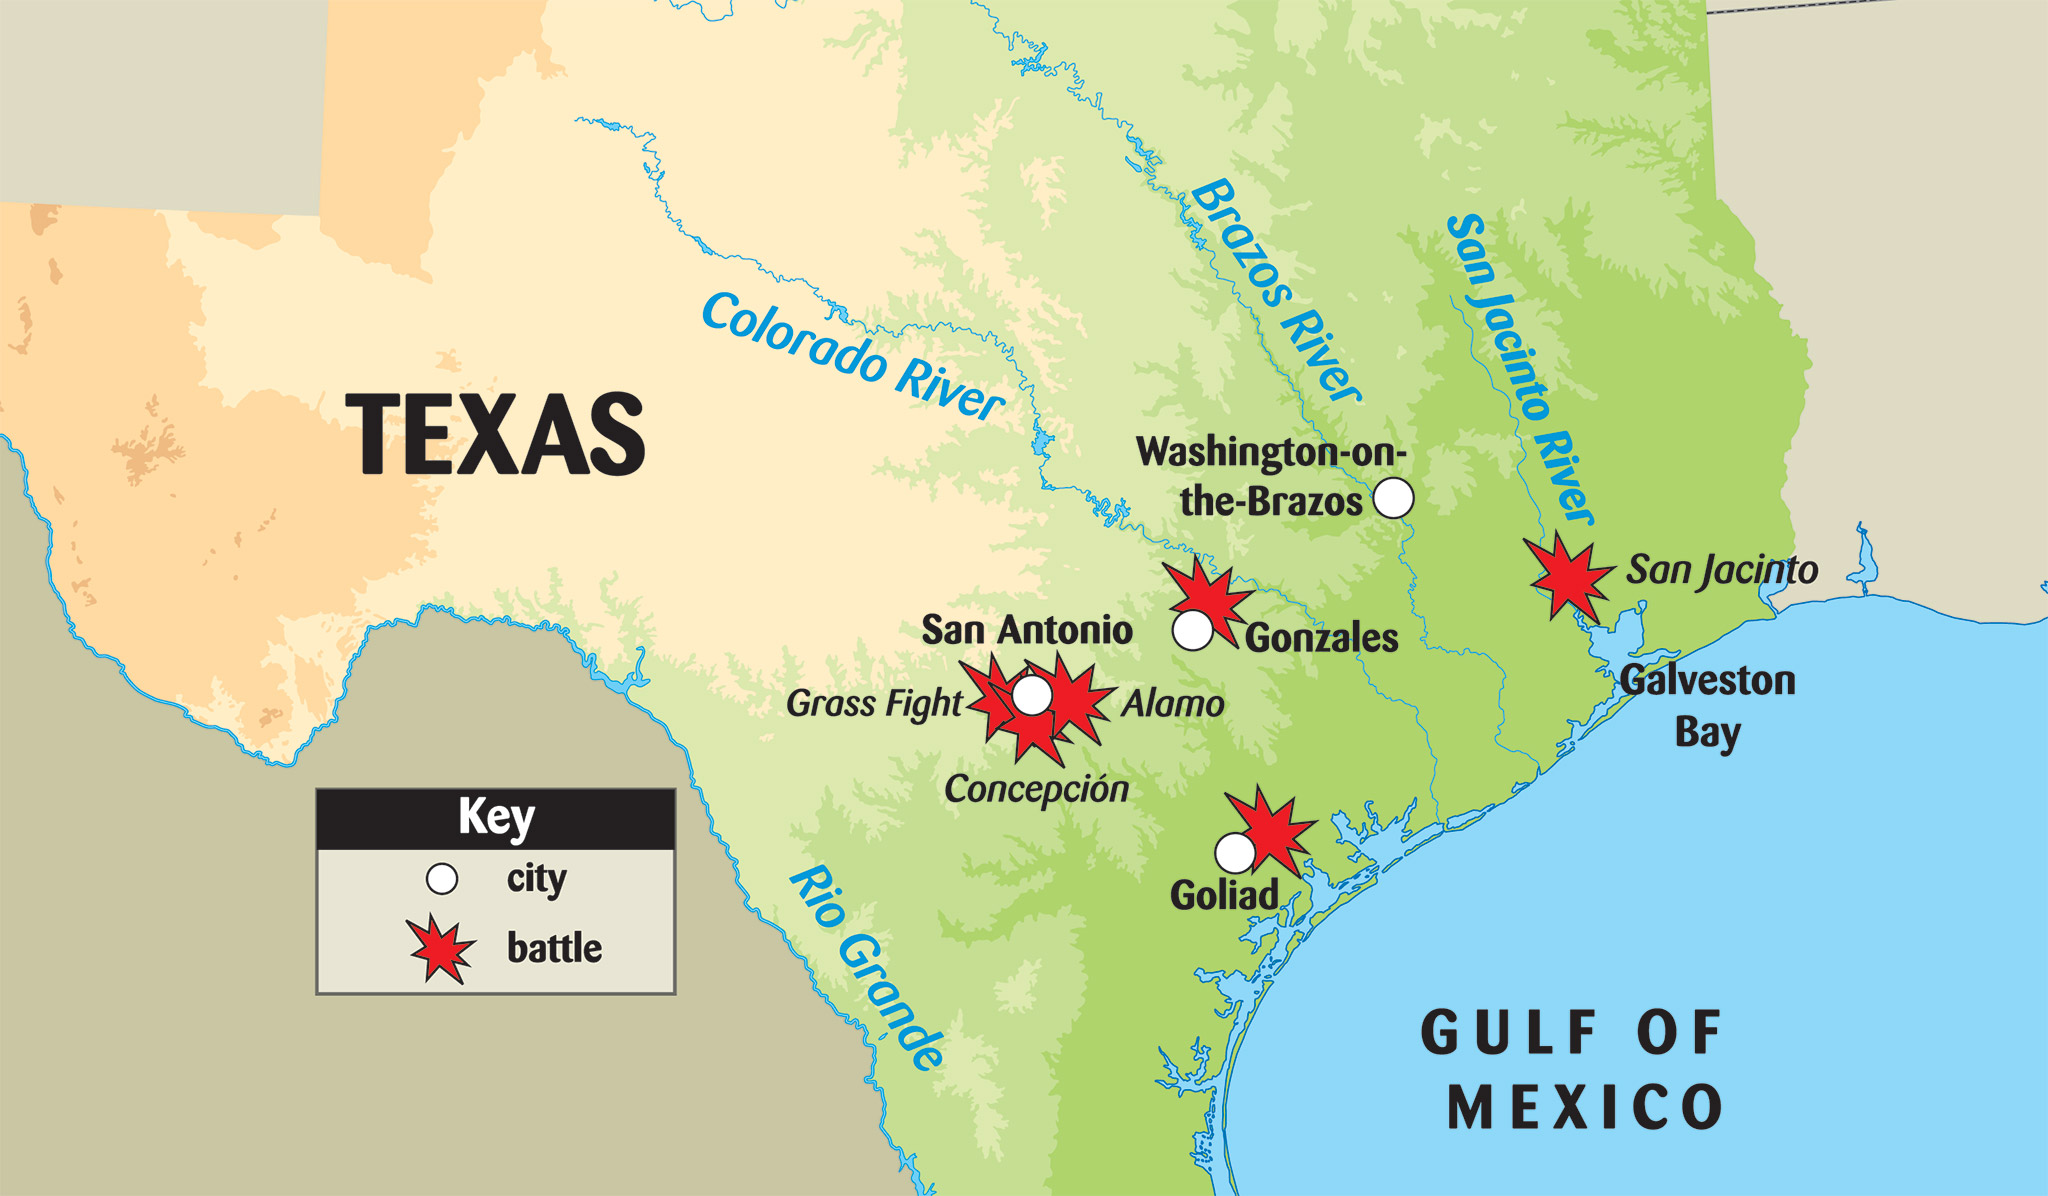 Events of the Texas on emaze